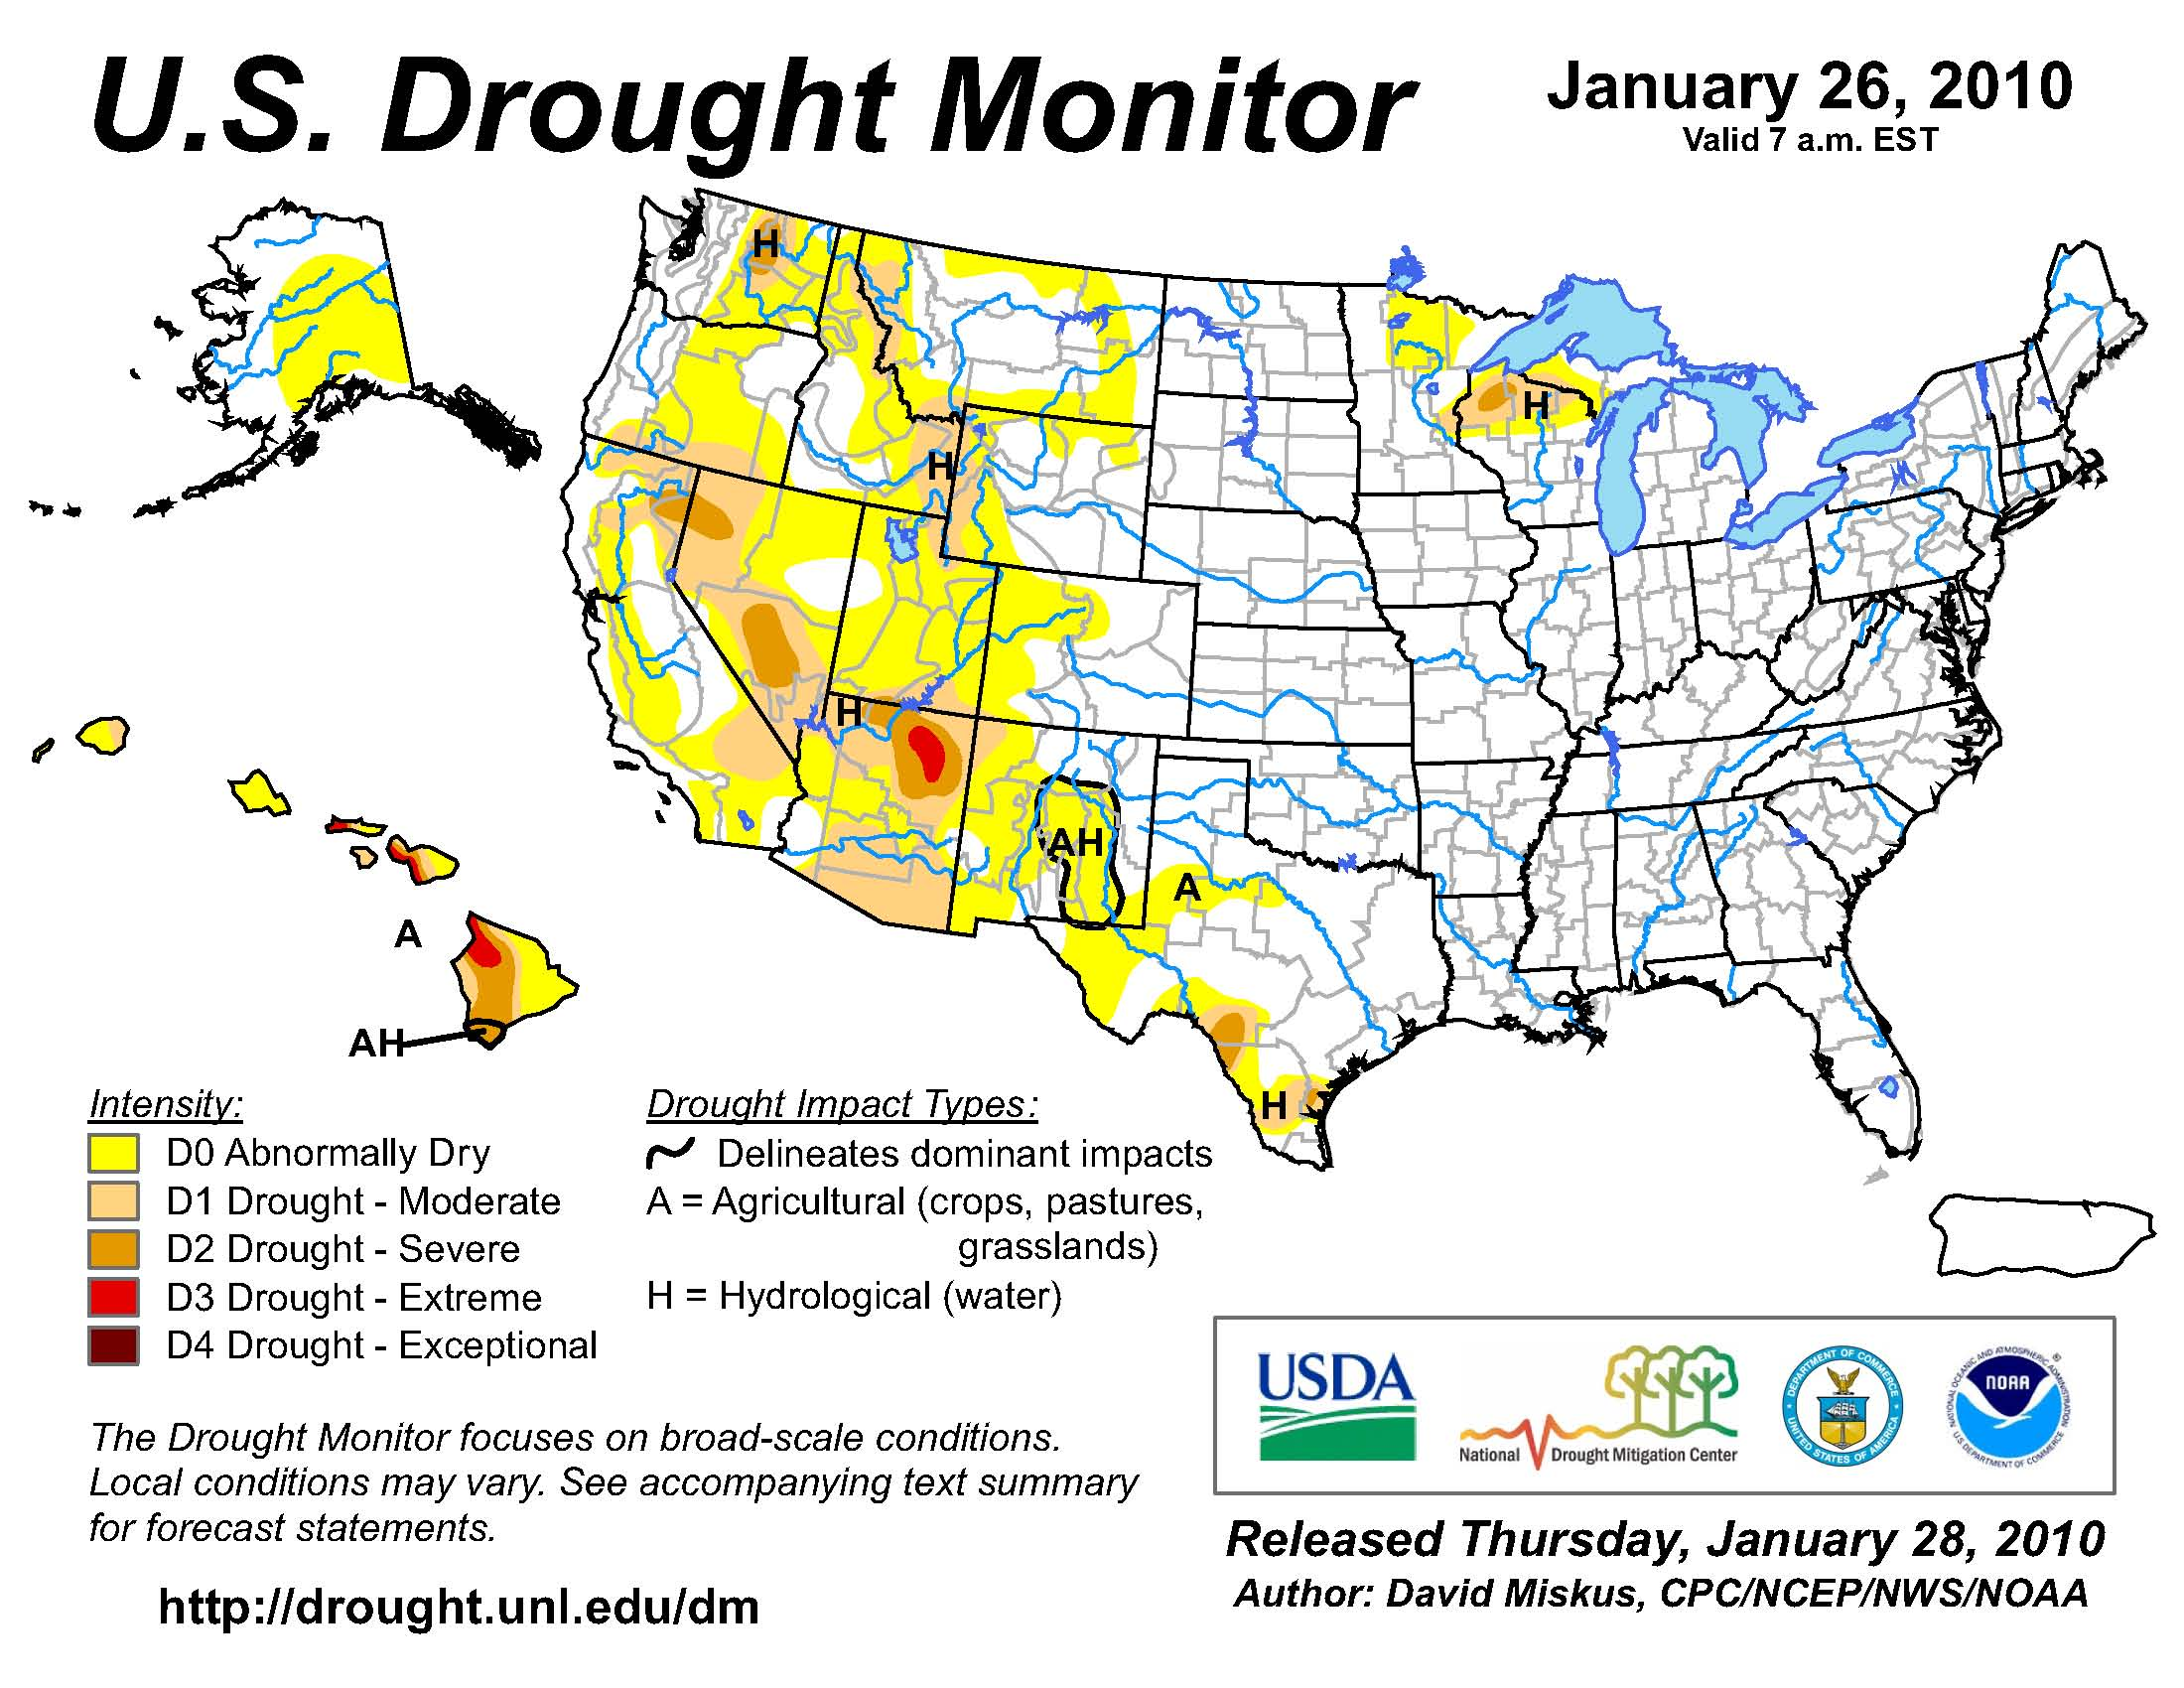 U.S. Drought Monitor map from 26 January 2010